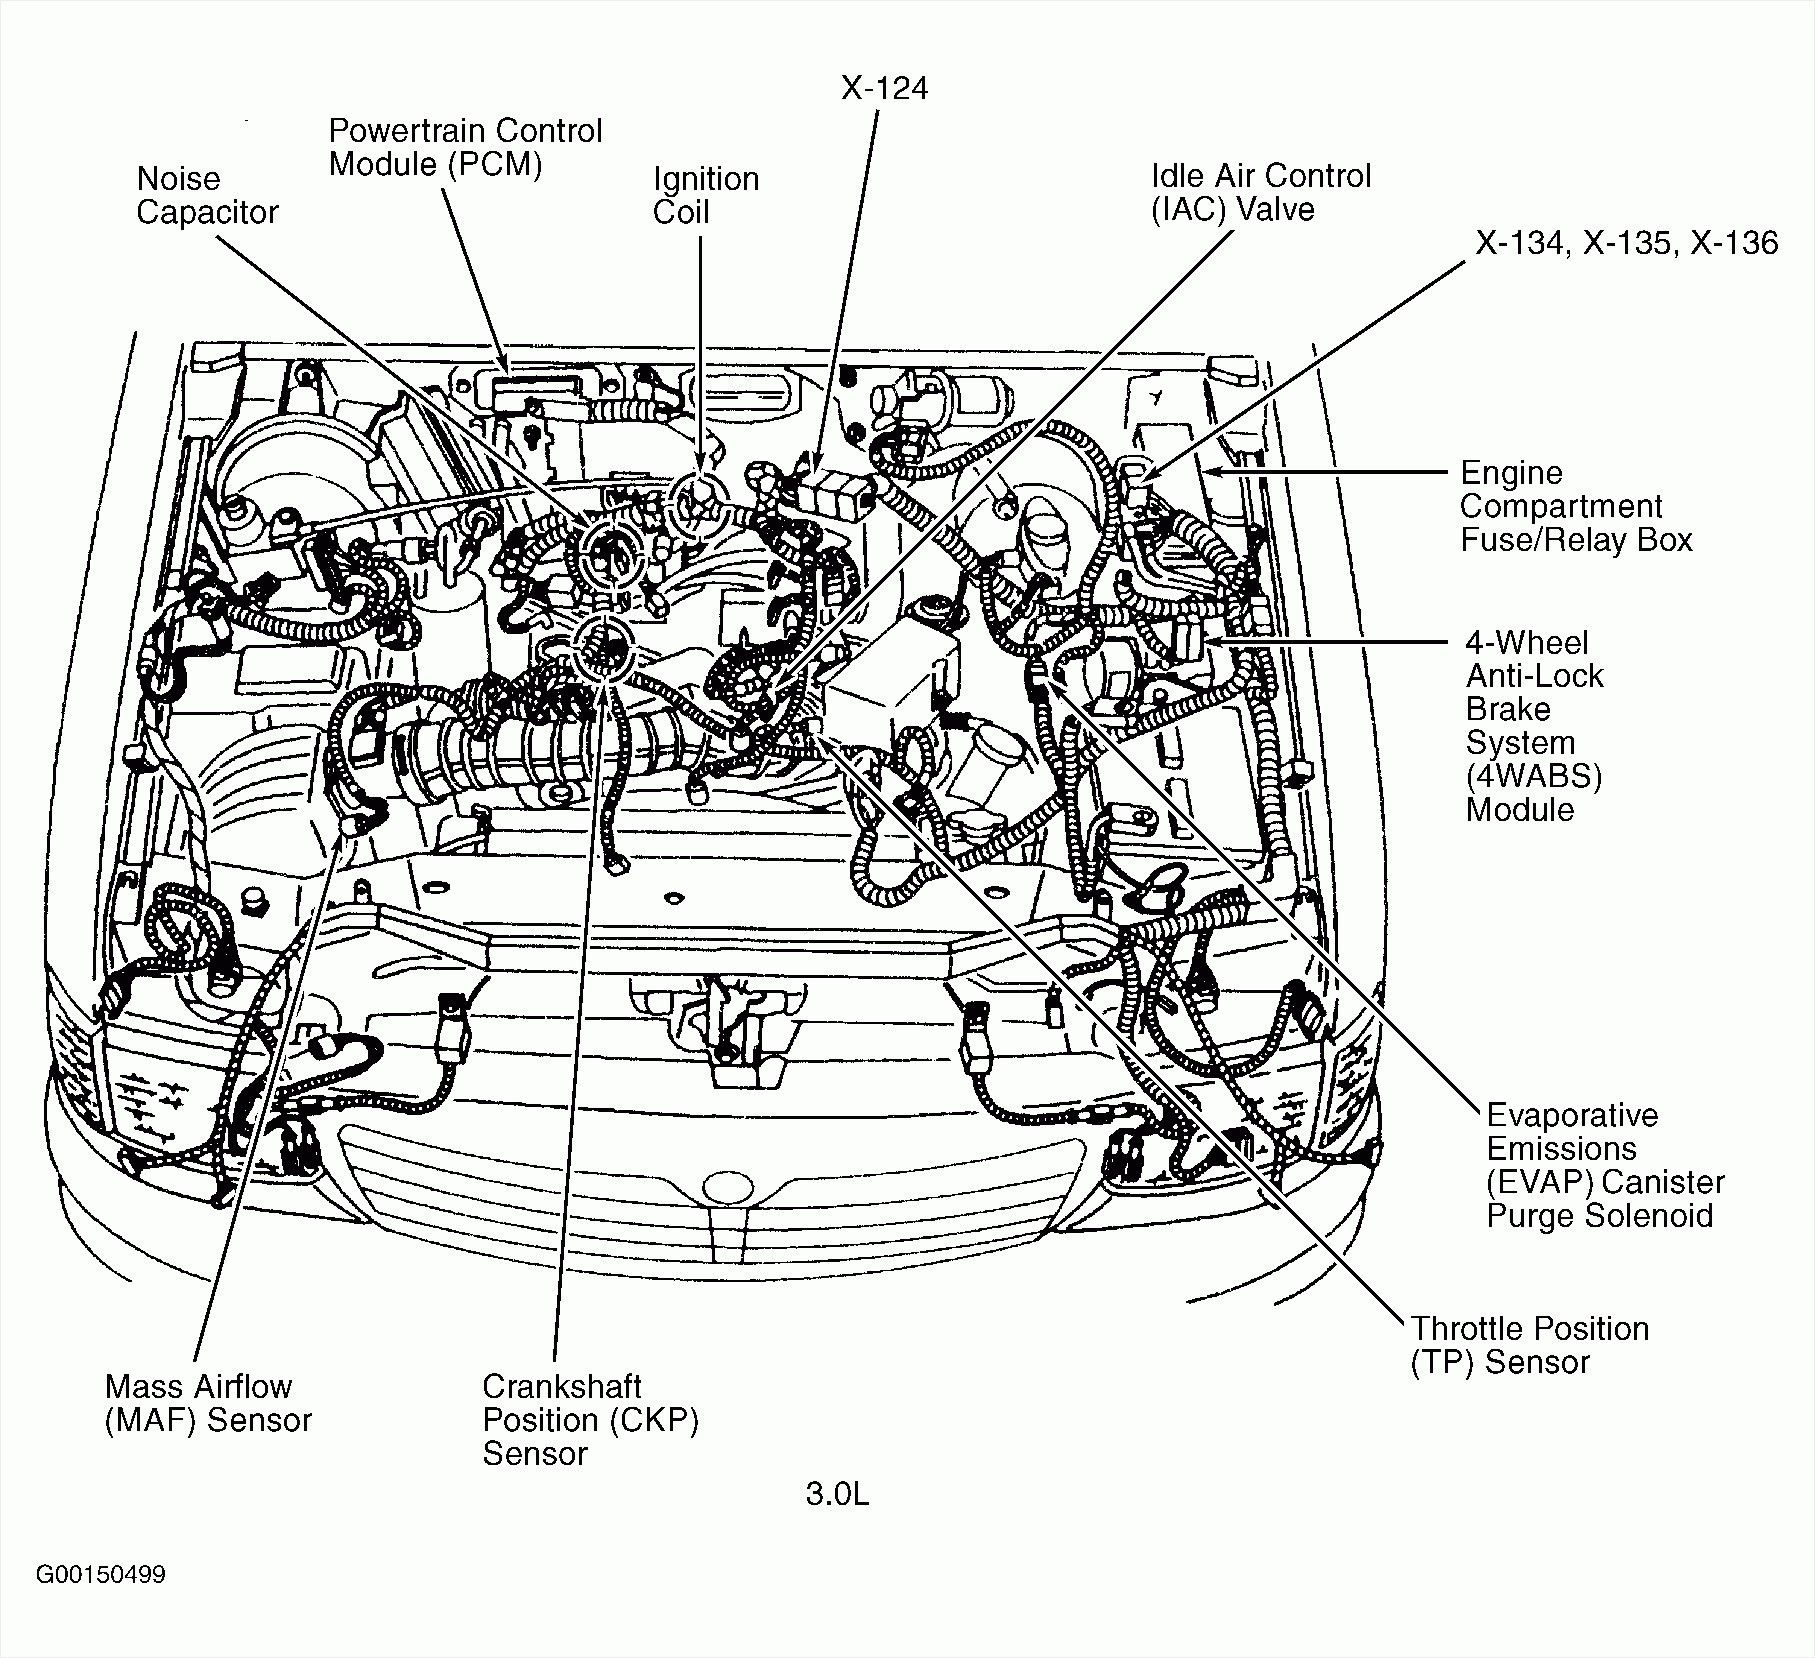 Engin Diagram 2005 Ford Escape In 2021 Engine Diagram Ford Focus Engine Ford Ranger